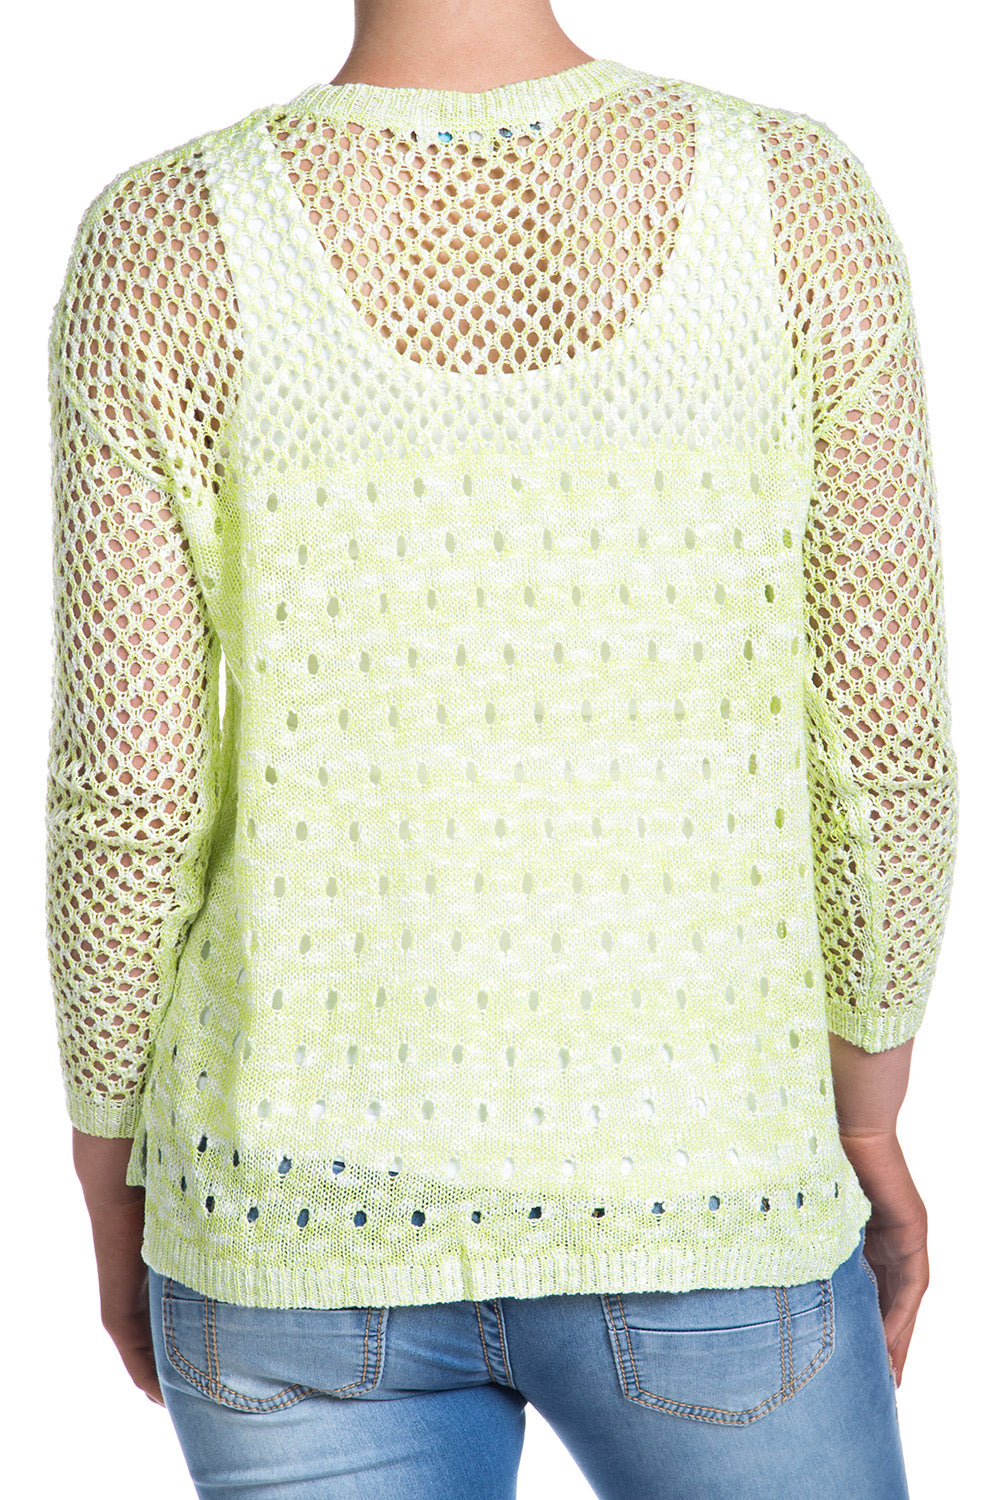 Type 1 Lime Time Sweater